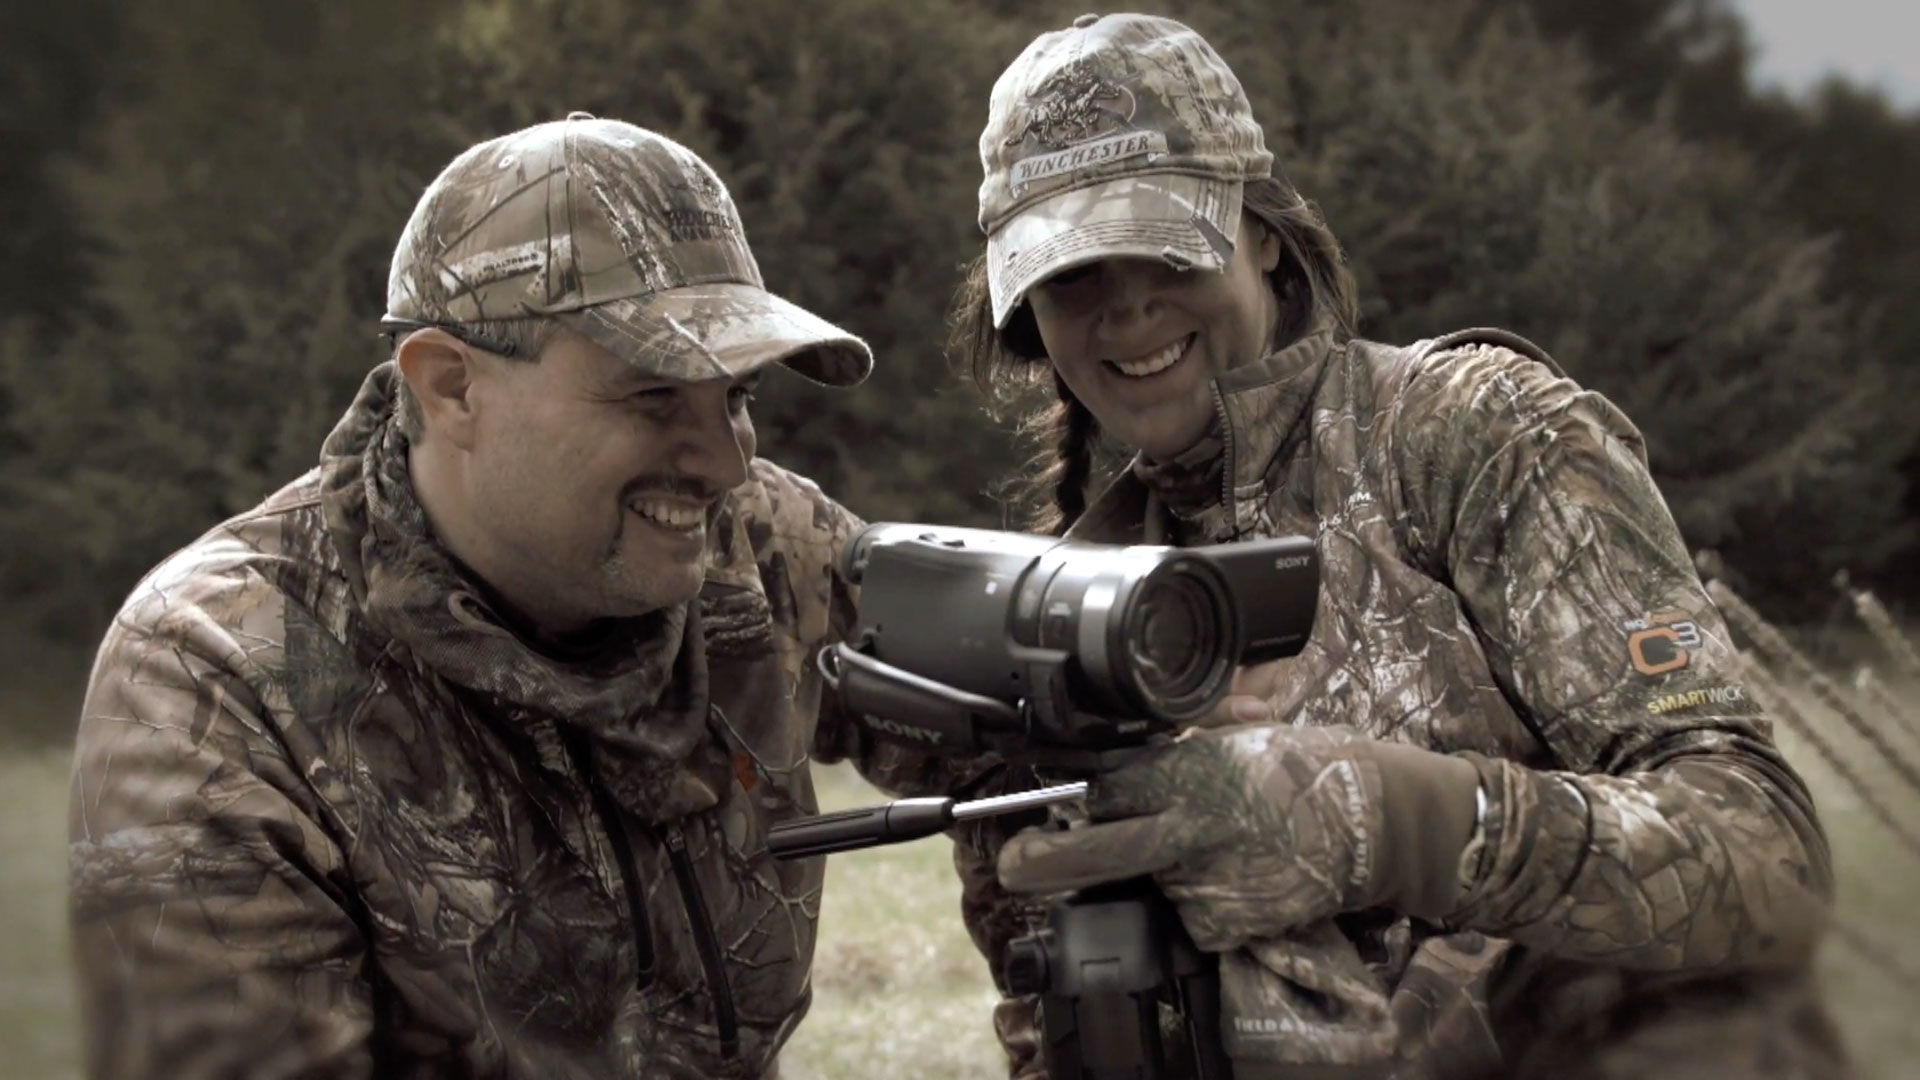 How to film your own hunt